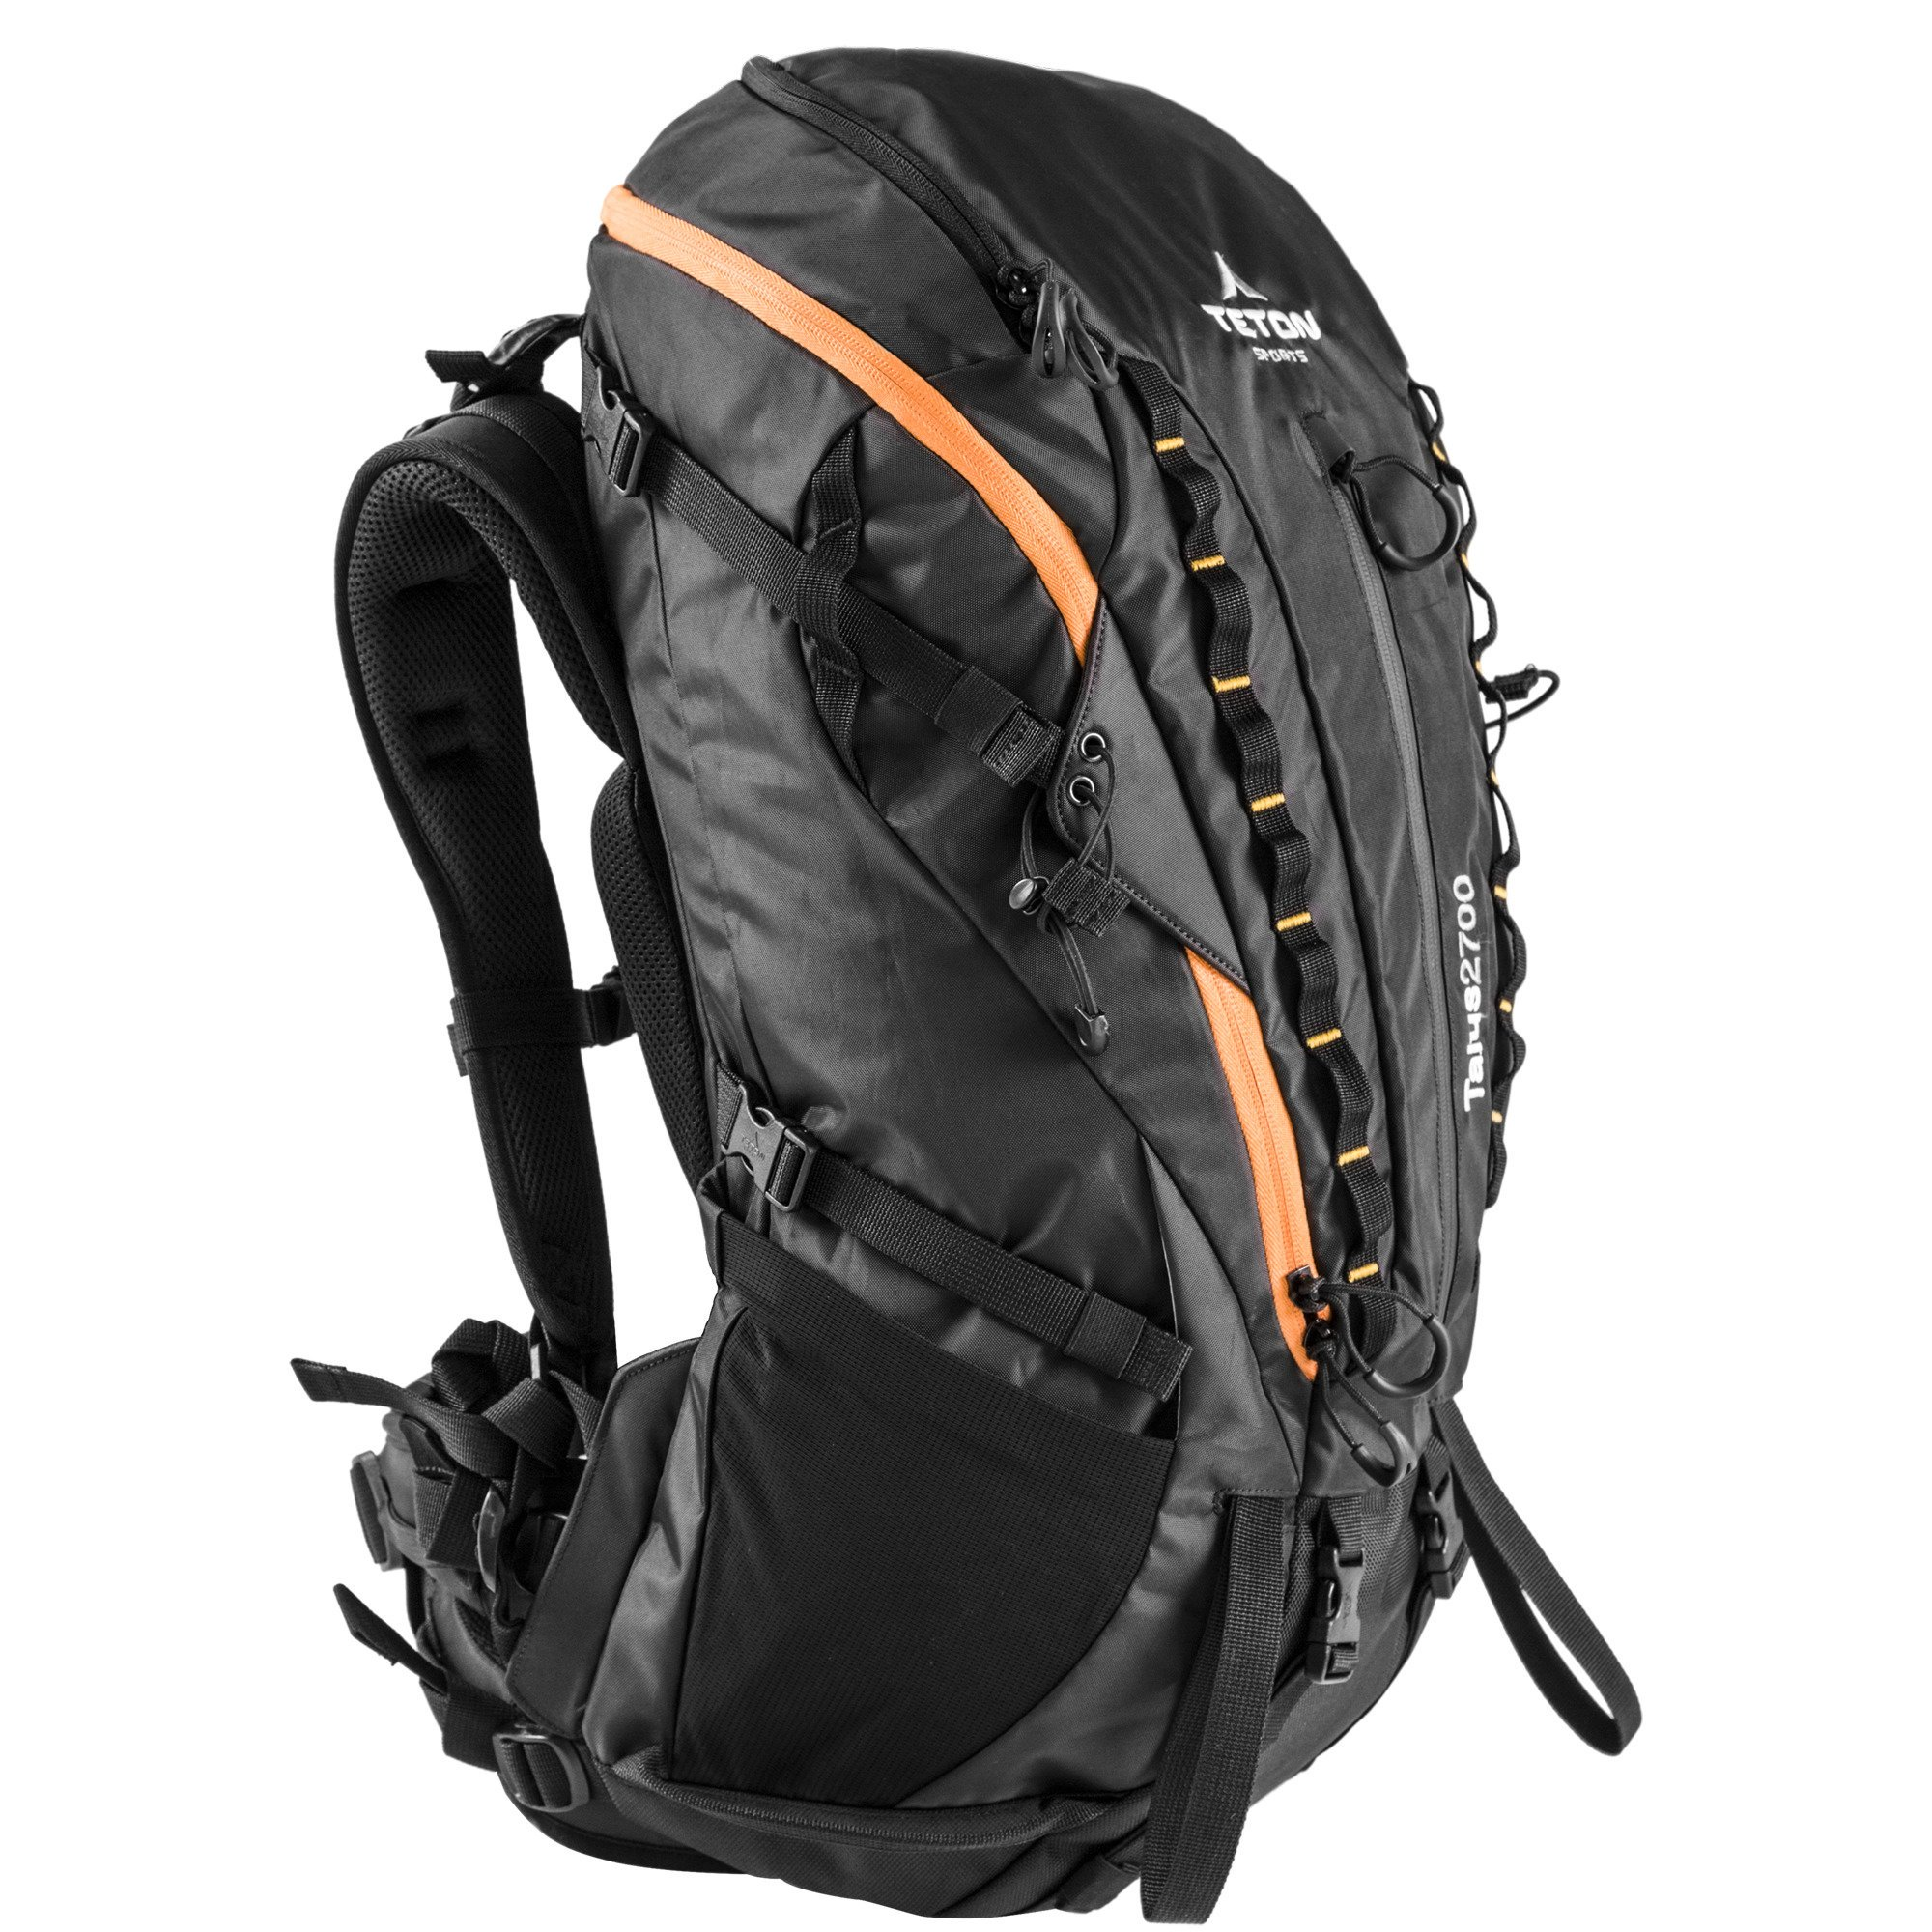 TALUS2700 BACKPACK